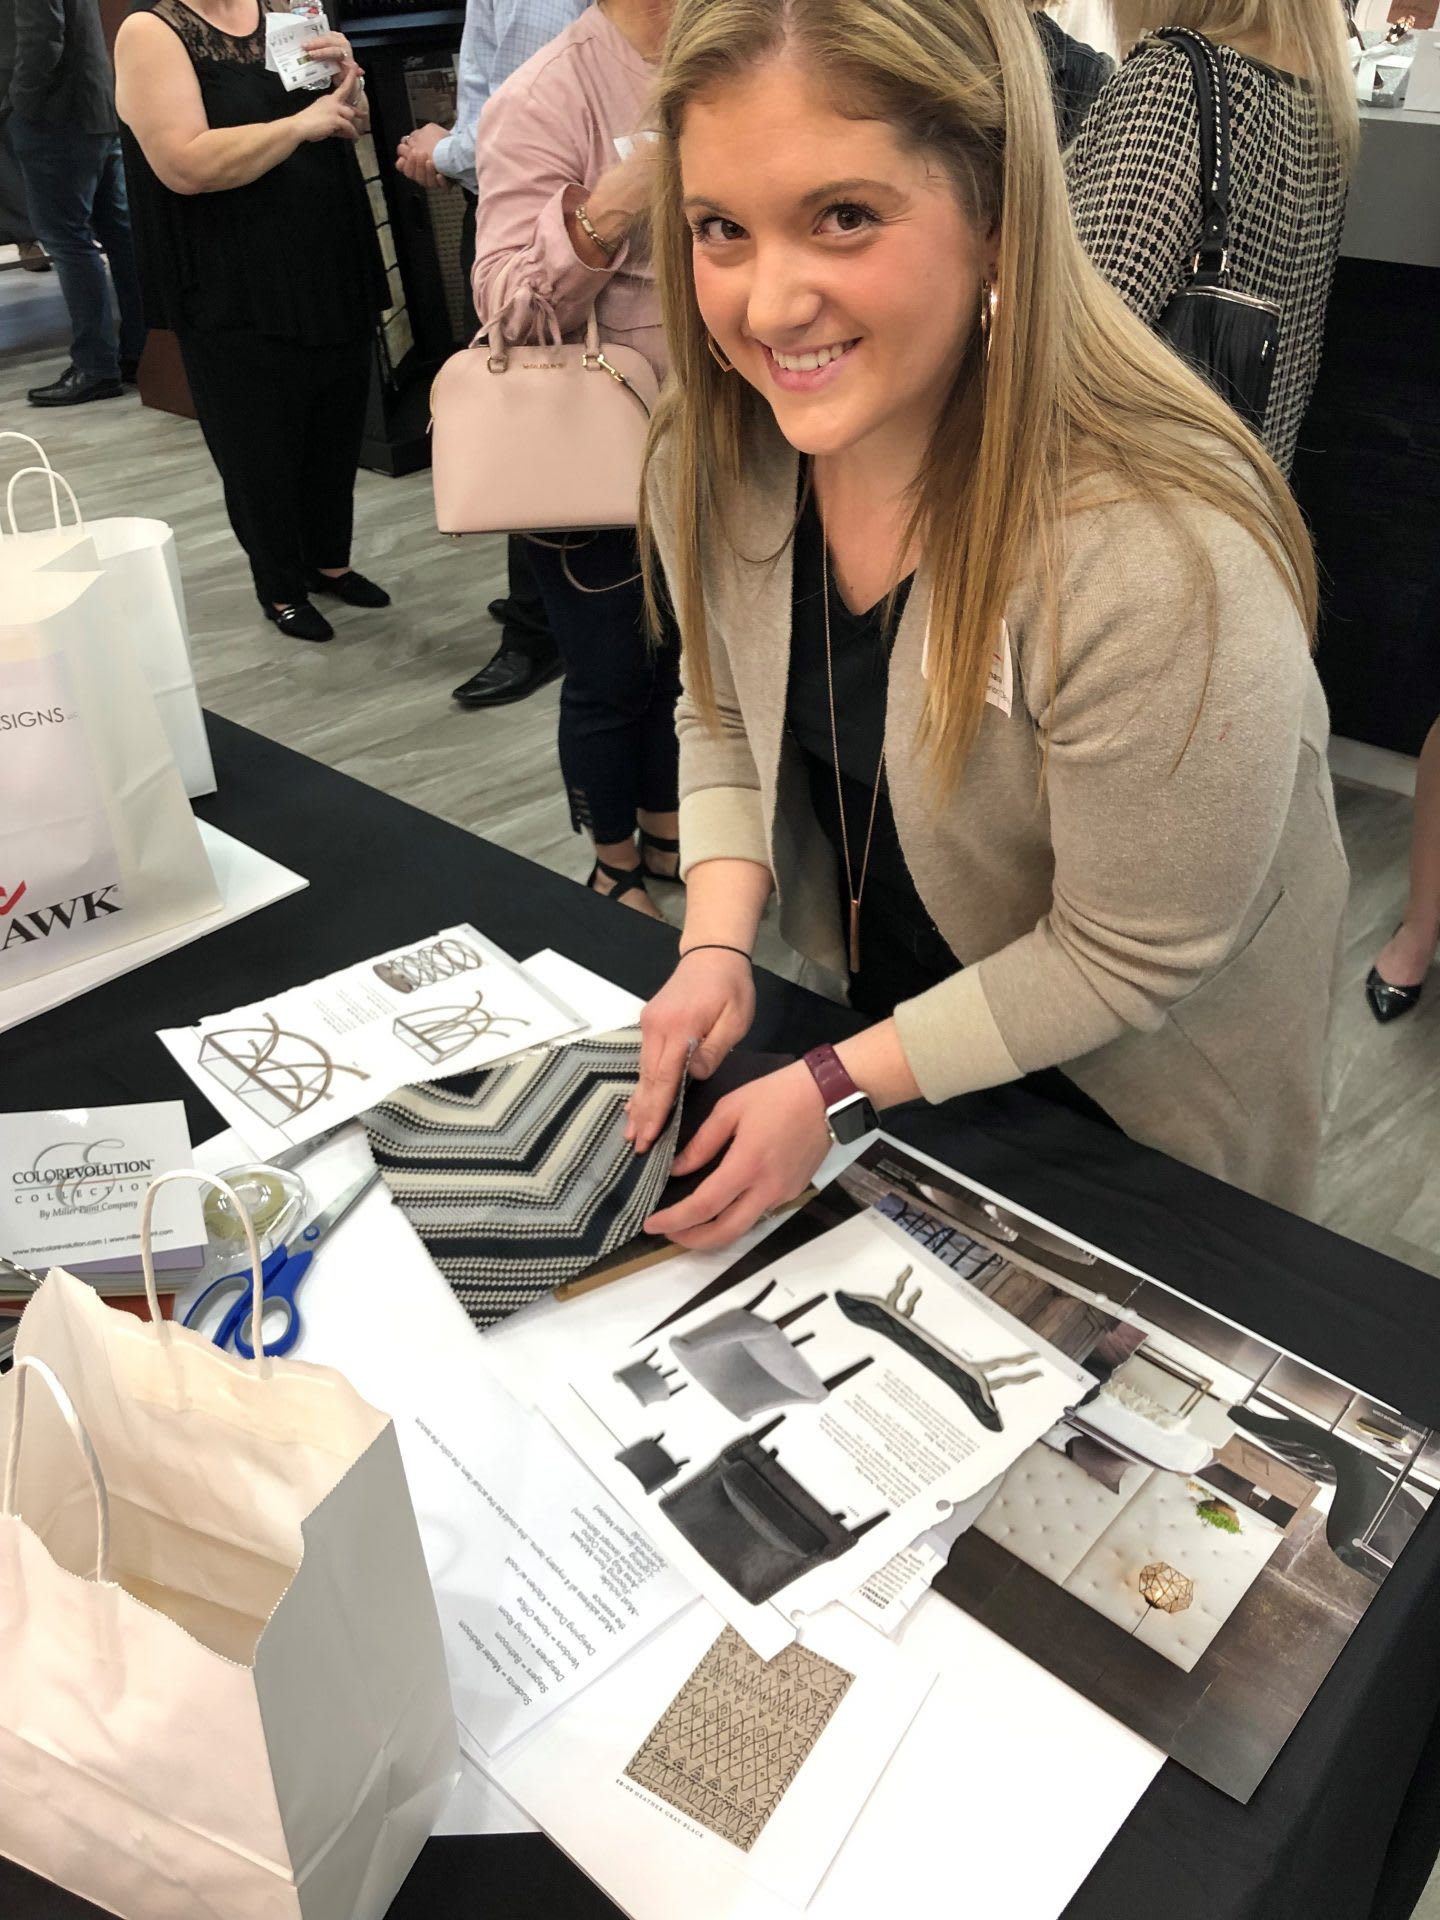 Woman smiling while looking at fabric samples for furniture, interior designer, creativity, Brandi Cox, adidas, employee